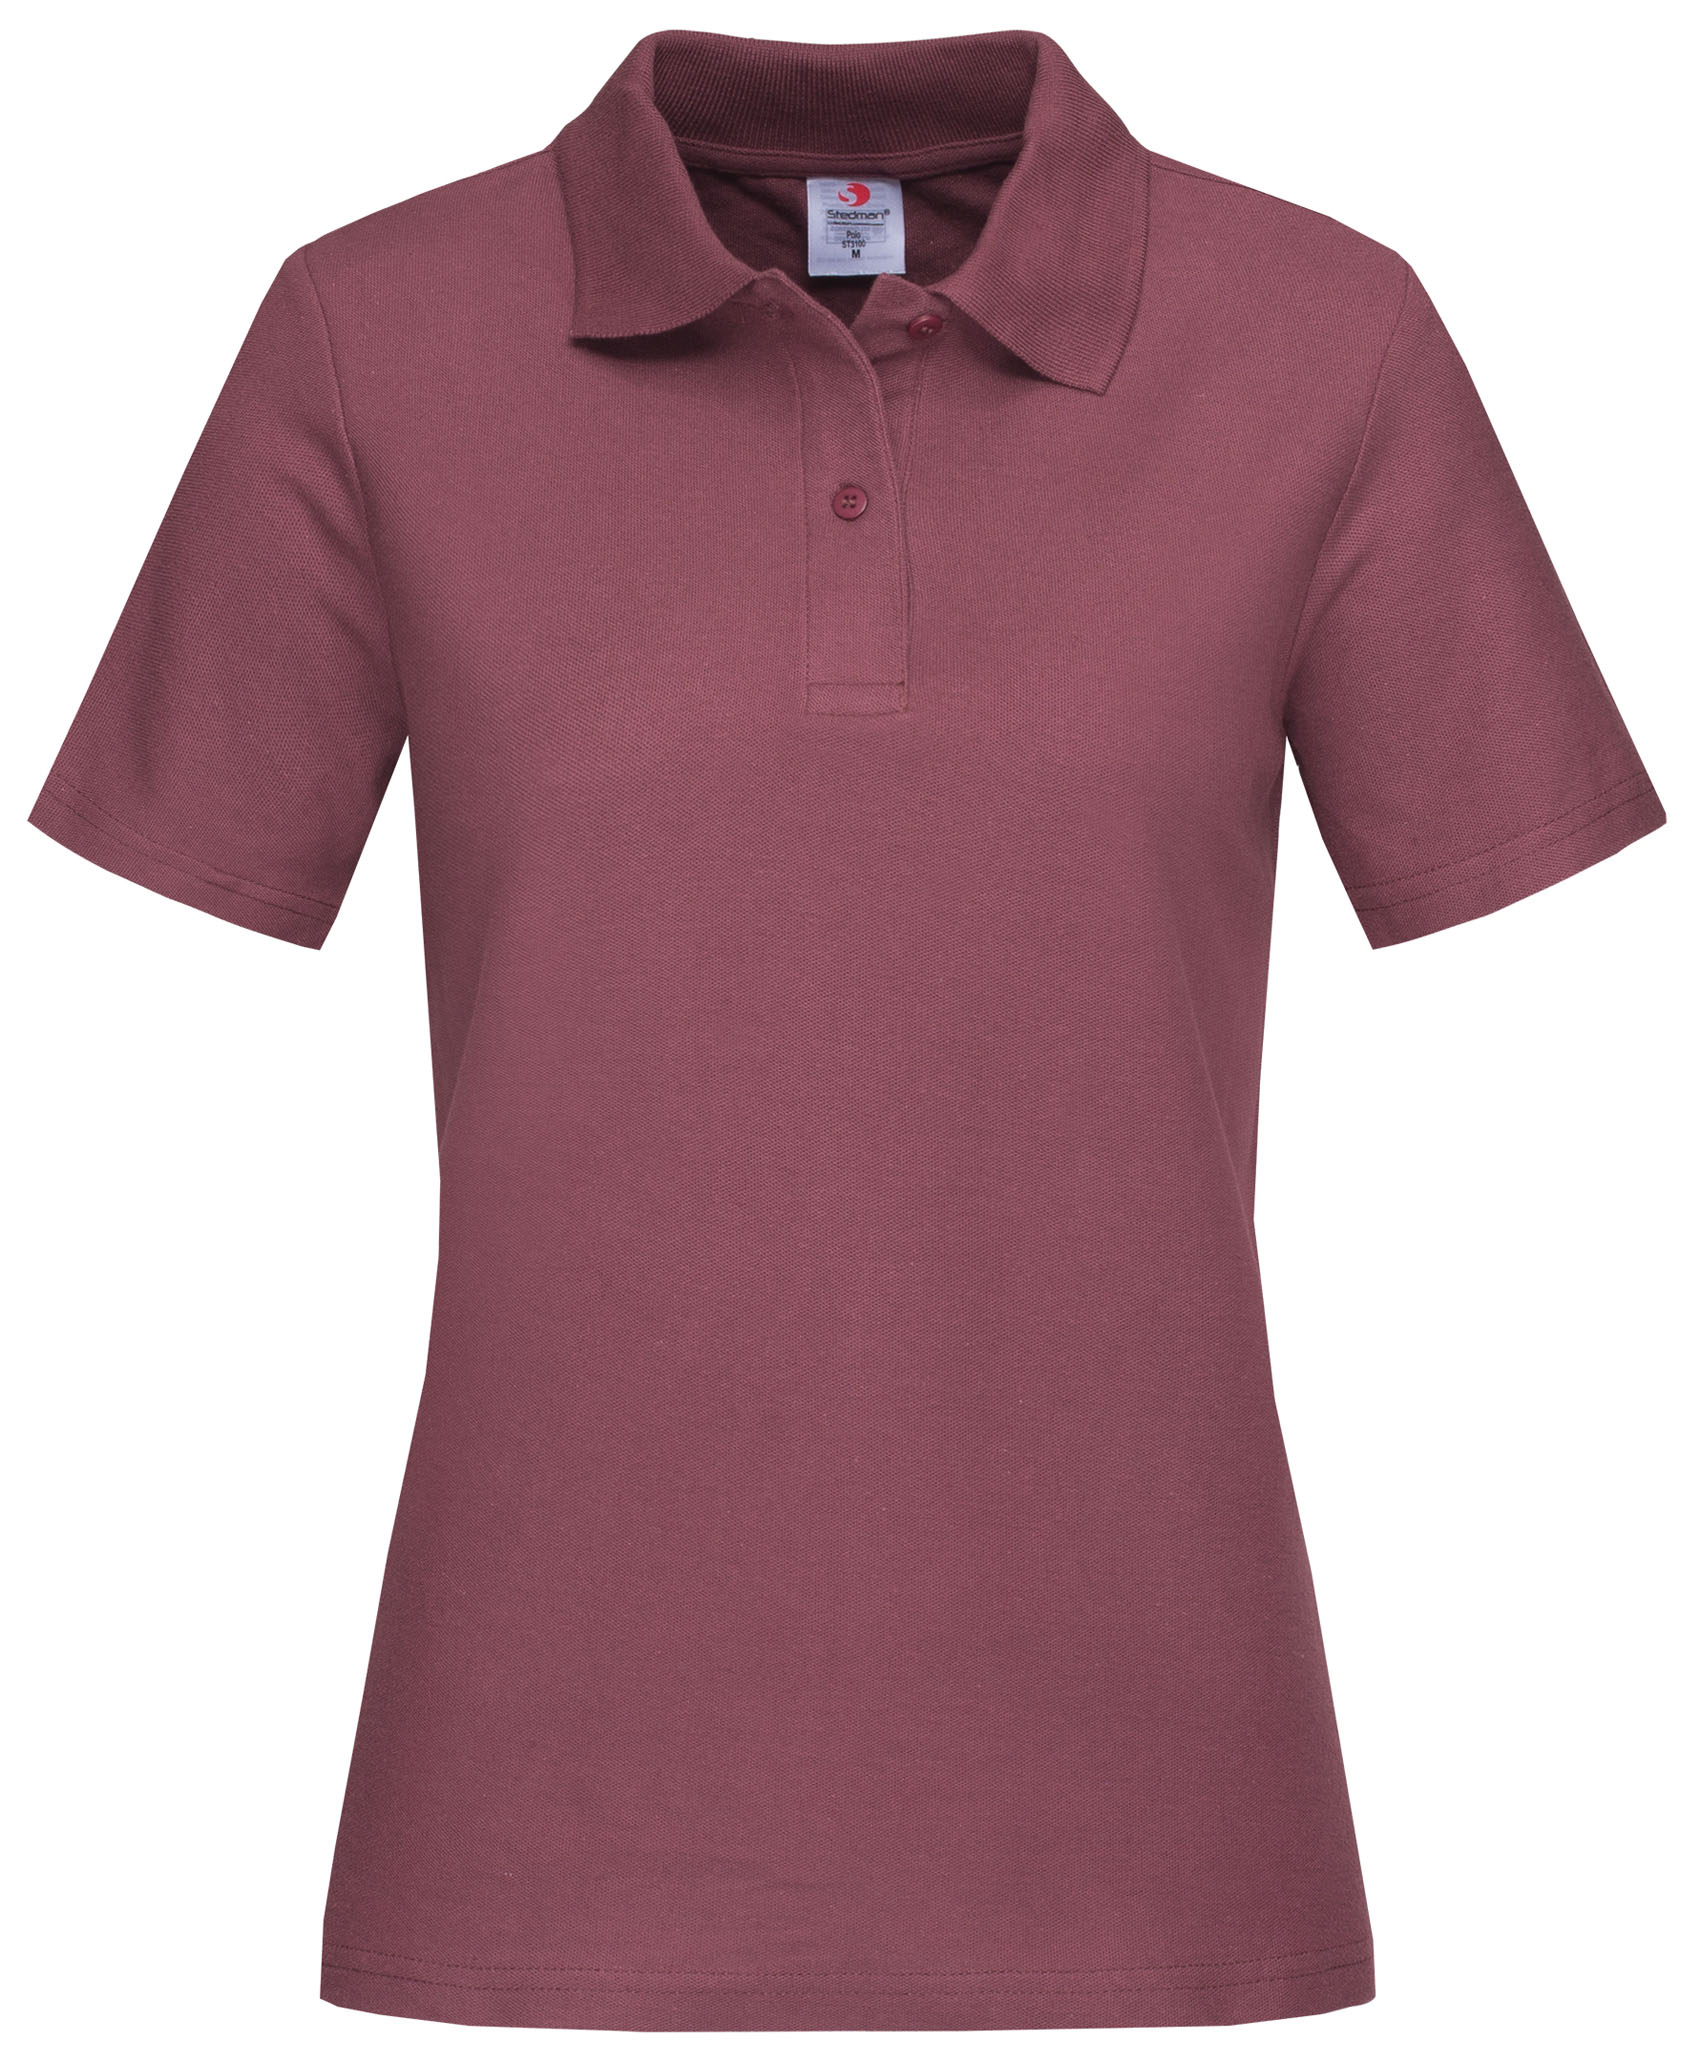 Stedman Polo for her